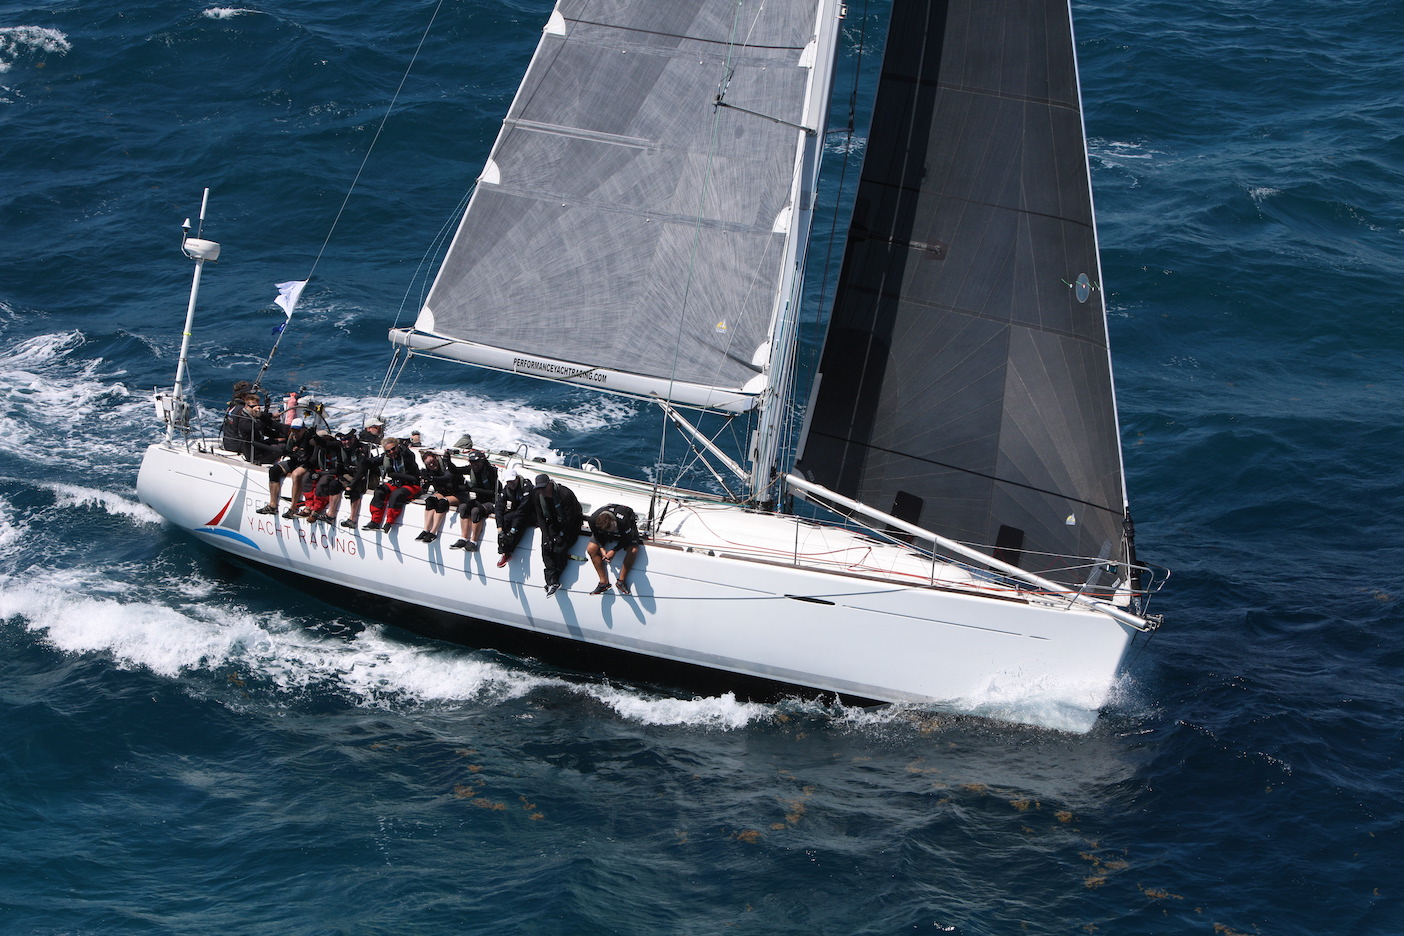 IRC Two: Performance Yacht Racing's First 47.7 EH01 skippered by Andy Middleton (GBR) © Tim Wright/Photoaction.com